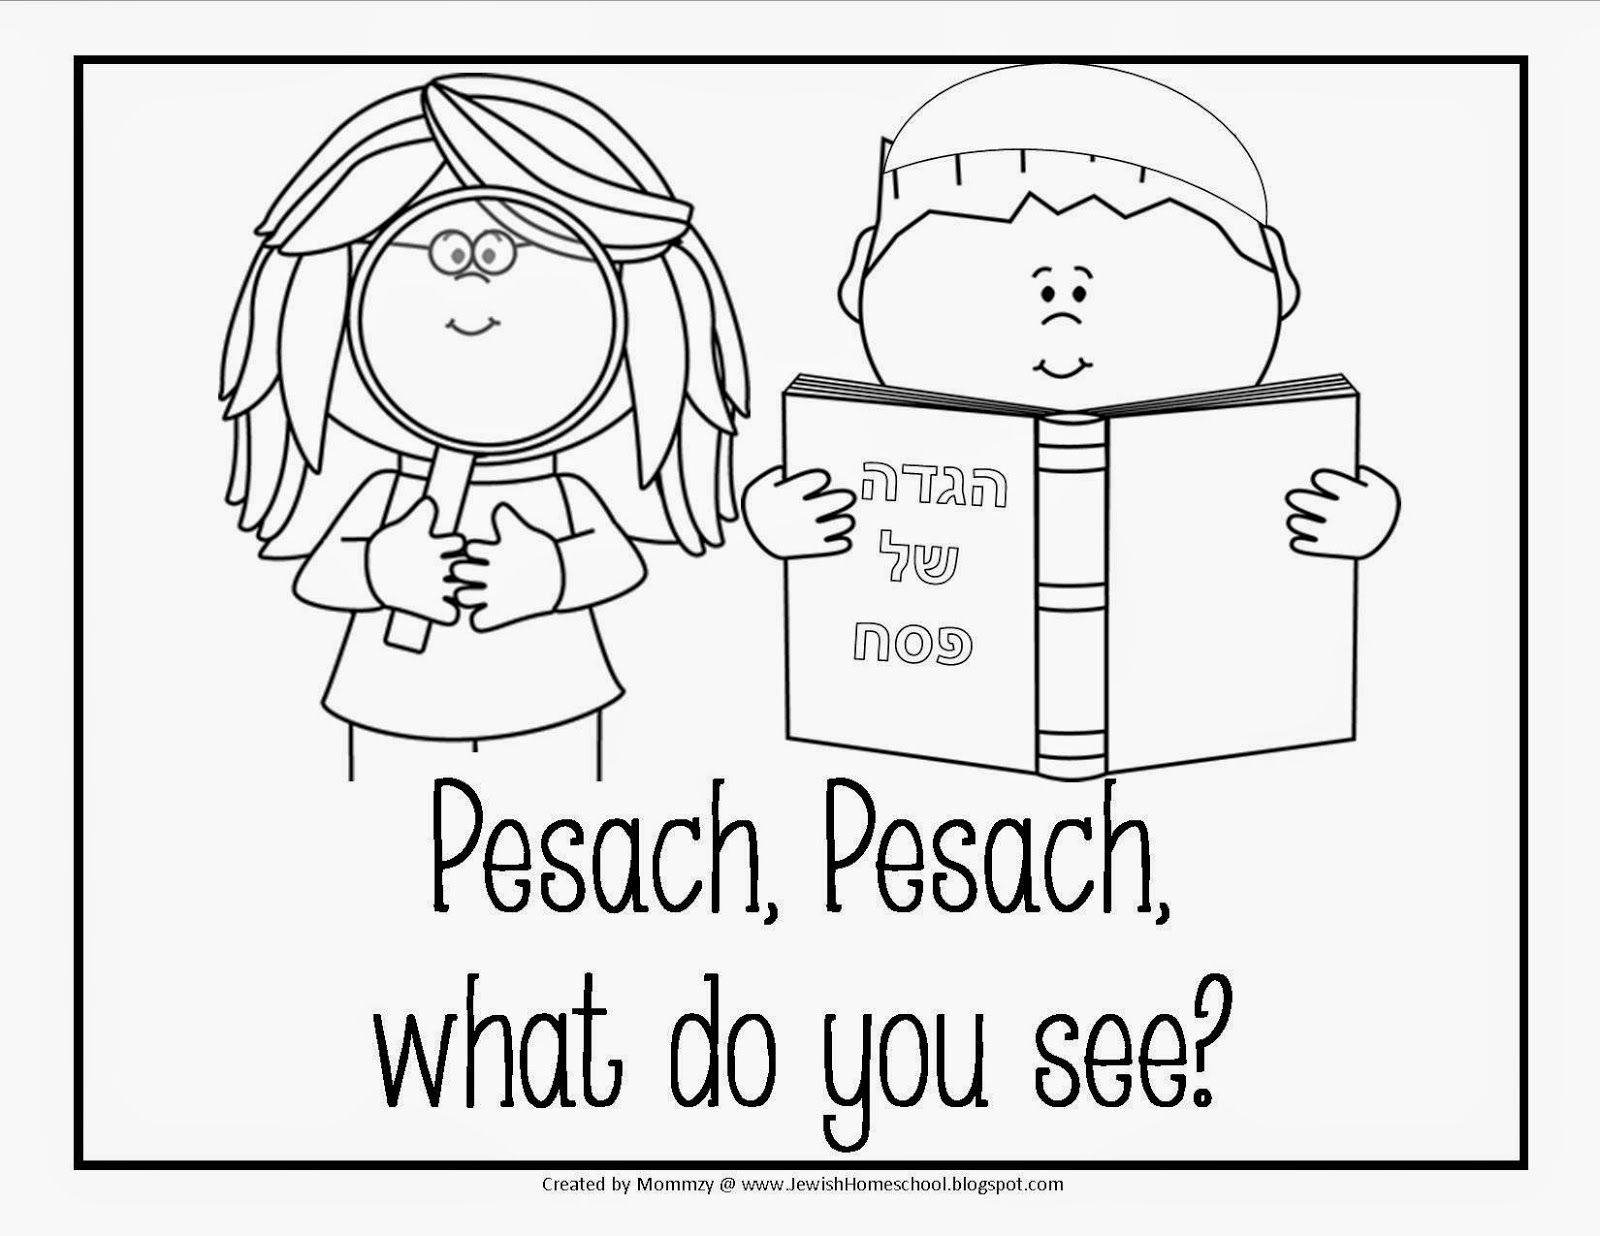 A Jewish Homeschool Blog Pesach Pesach What Do You See Passover Kids Passover Crafts Pesach Crafts [ 1236 x 1600 Pixel ]